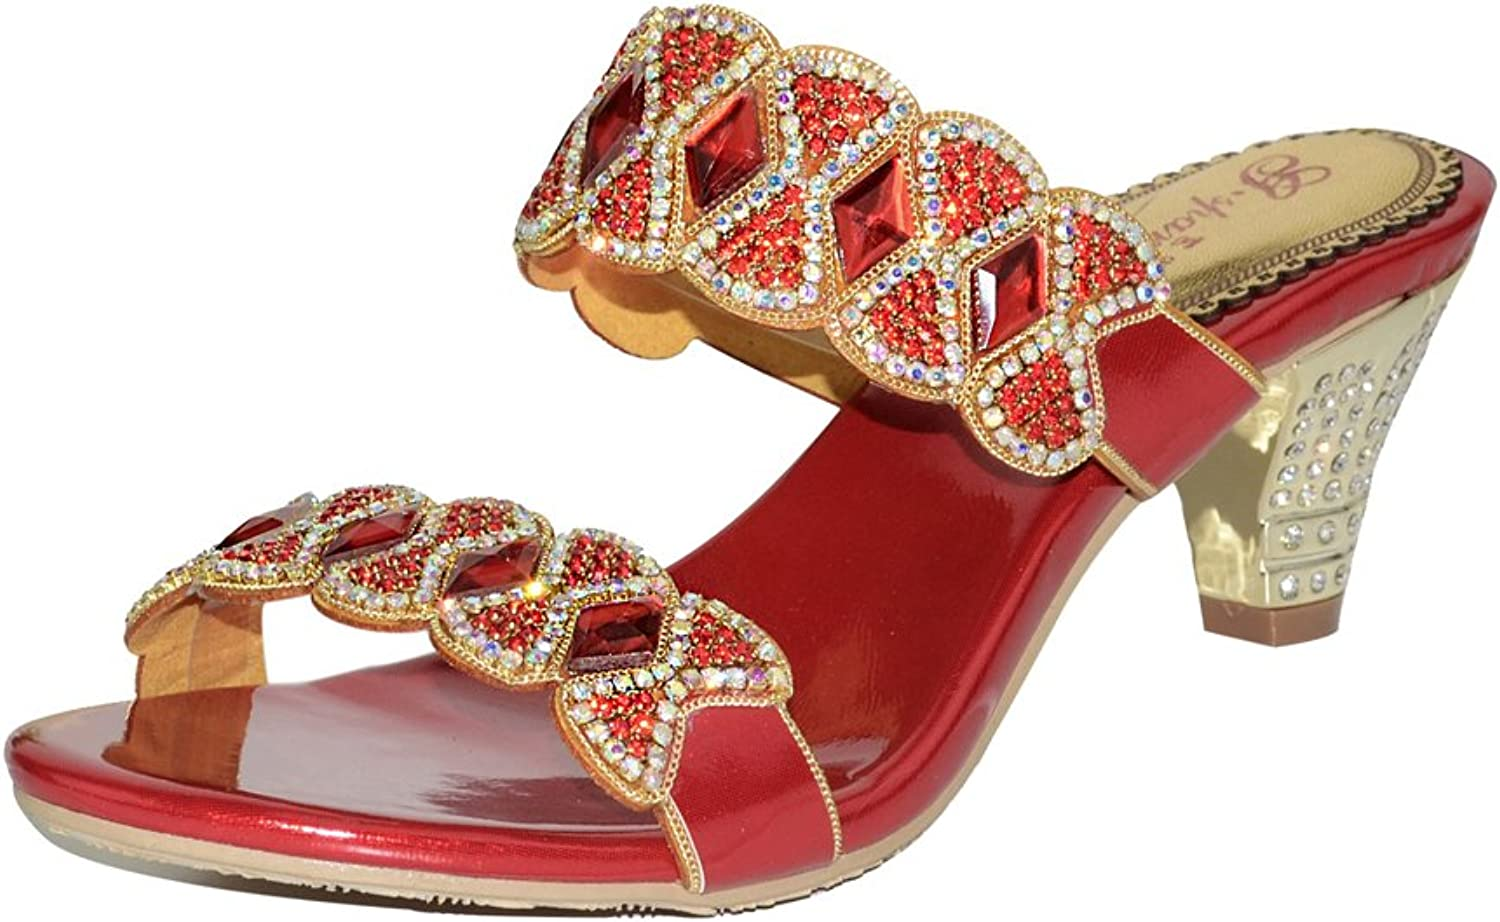 C&C Women's Genuine Leather Crystal Sandal Fashion Slippers